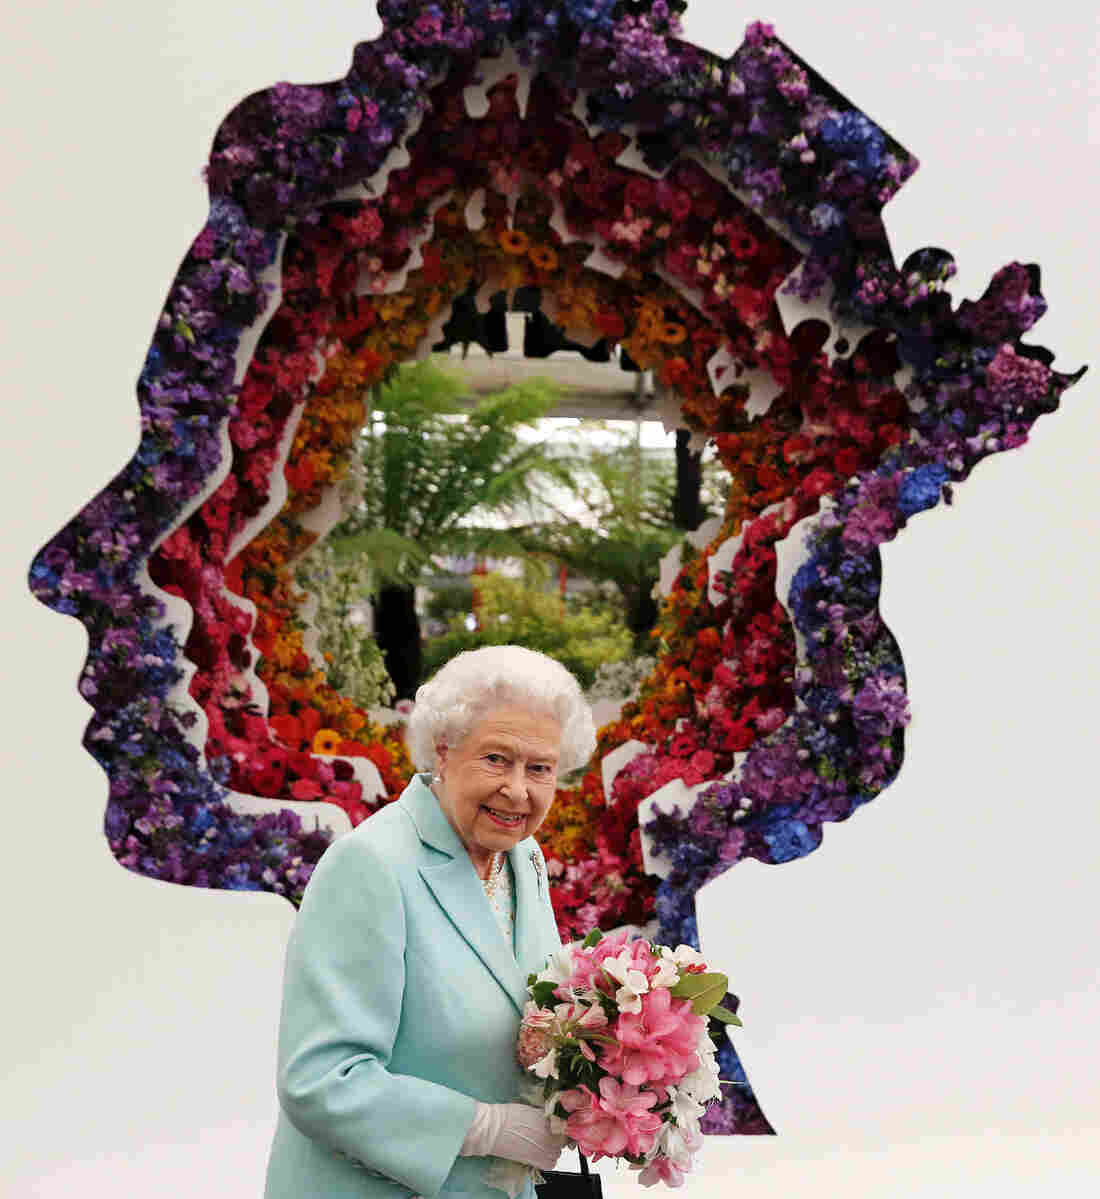 Queen Elizabeth II is pictured beside a floral exhibit at the Chelsea Flower Show that features her own image.